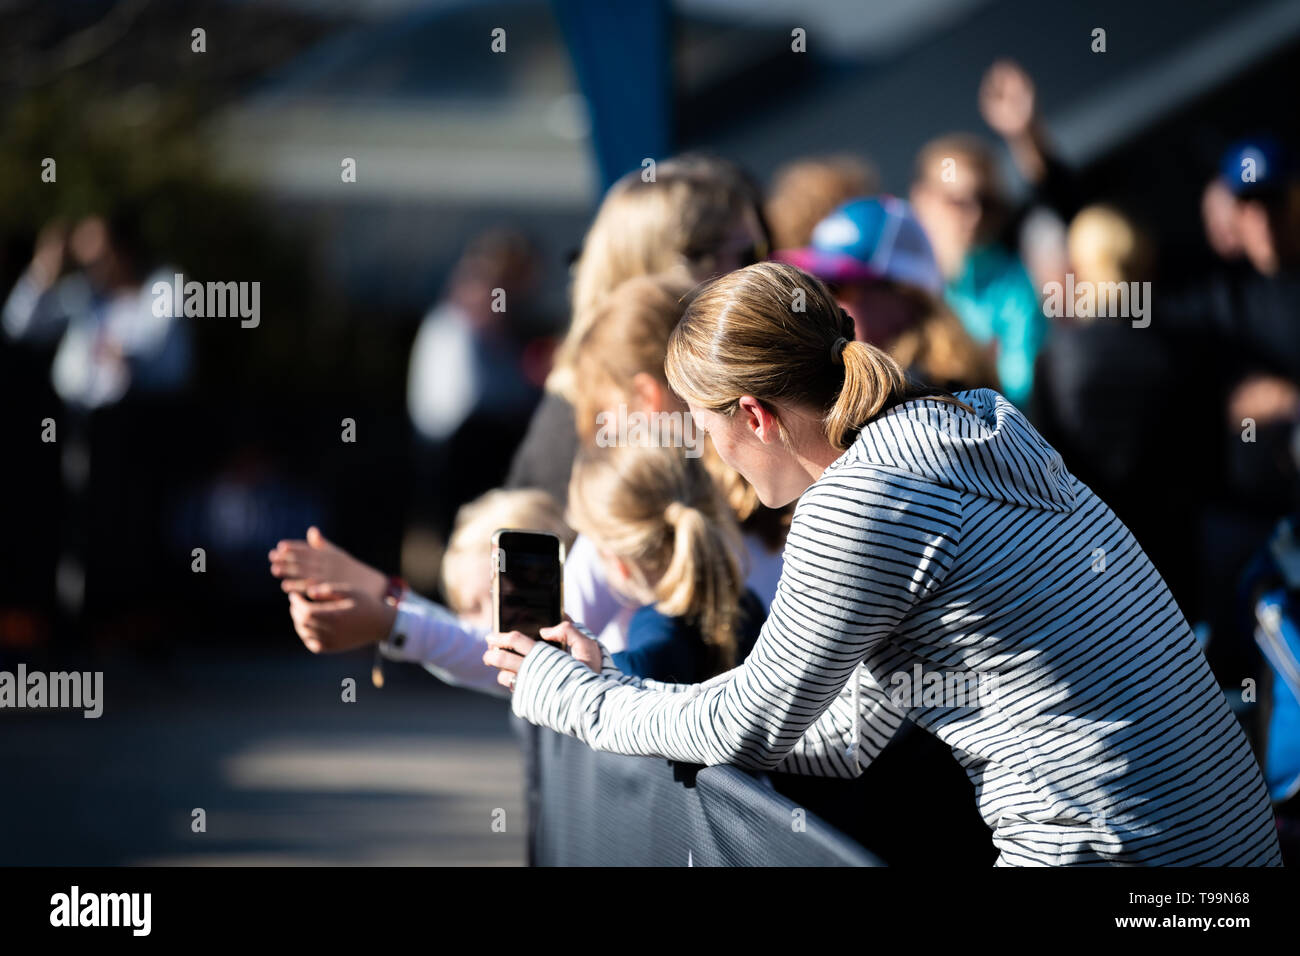 Blue Mountains, Australia - April 16 2019: Ultra-Trail Australia UTA11 race. Woman videos runners on her phone about to finish on home stretch. - Stock Image